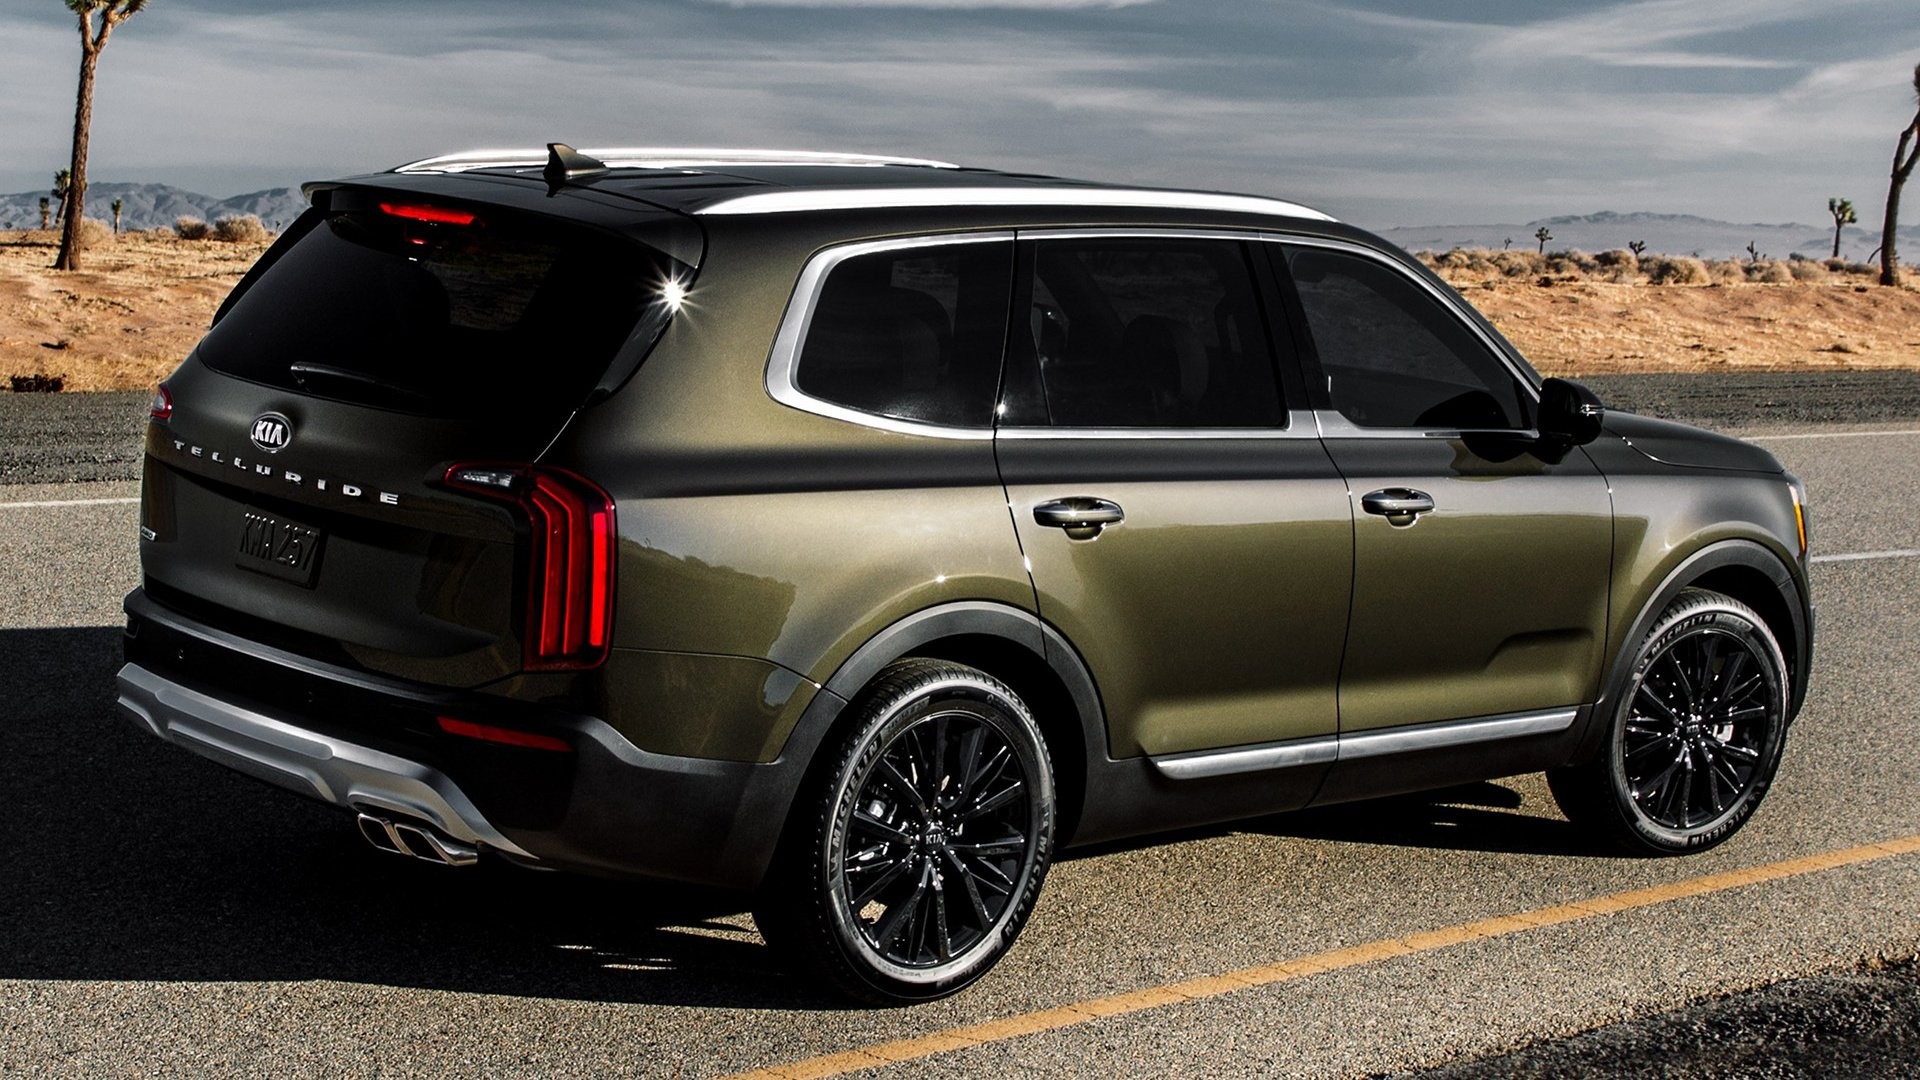 2020 Kia Telluride   Wallpapers and HD Images Car Pixel 1920x1080